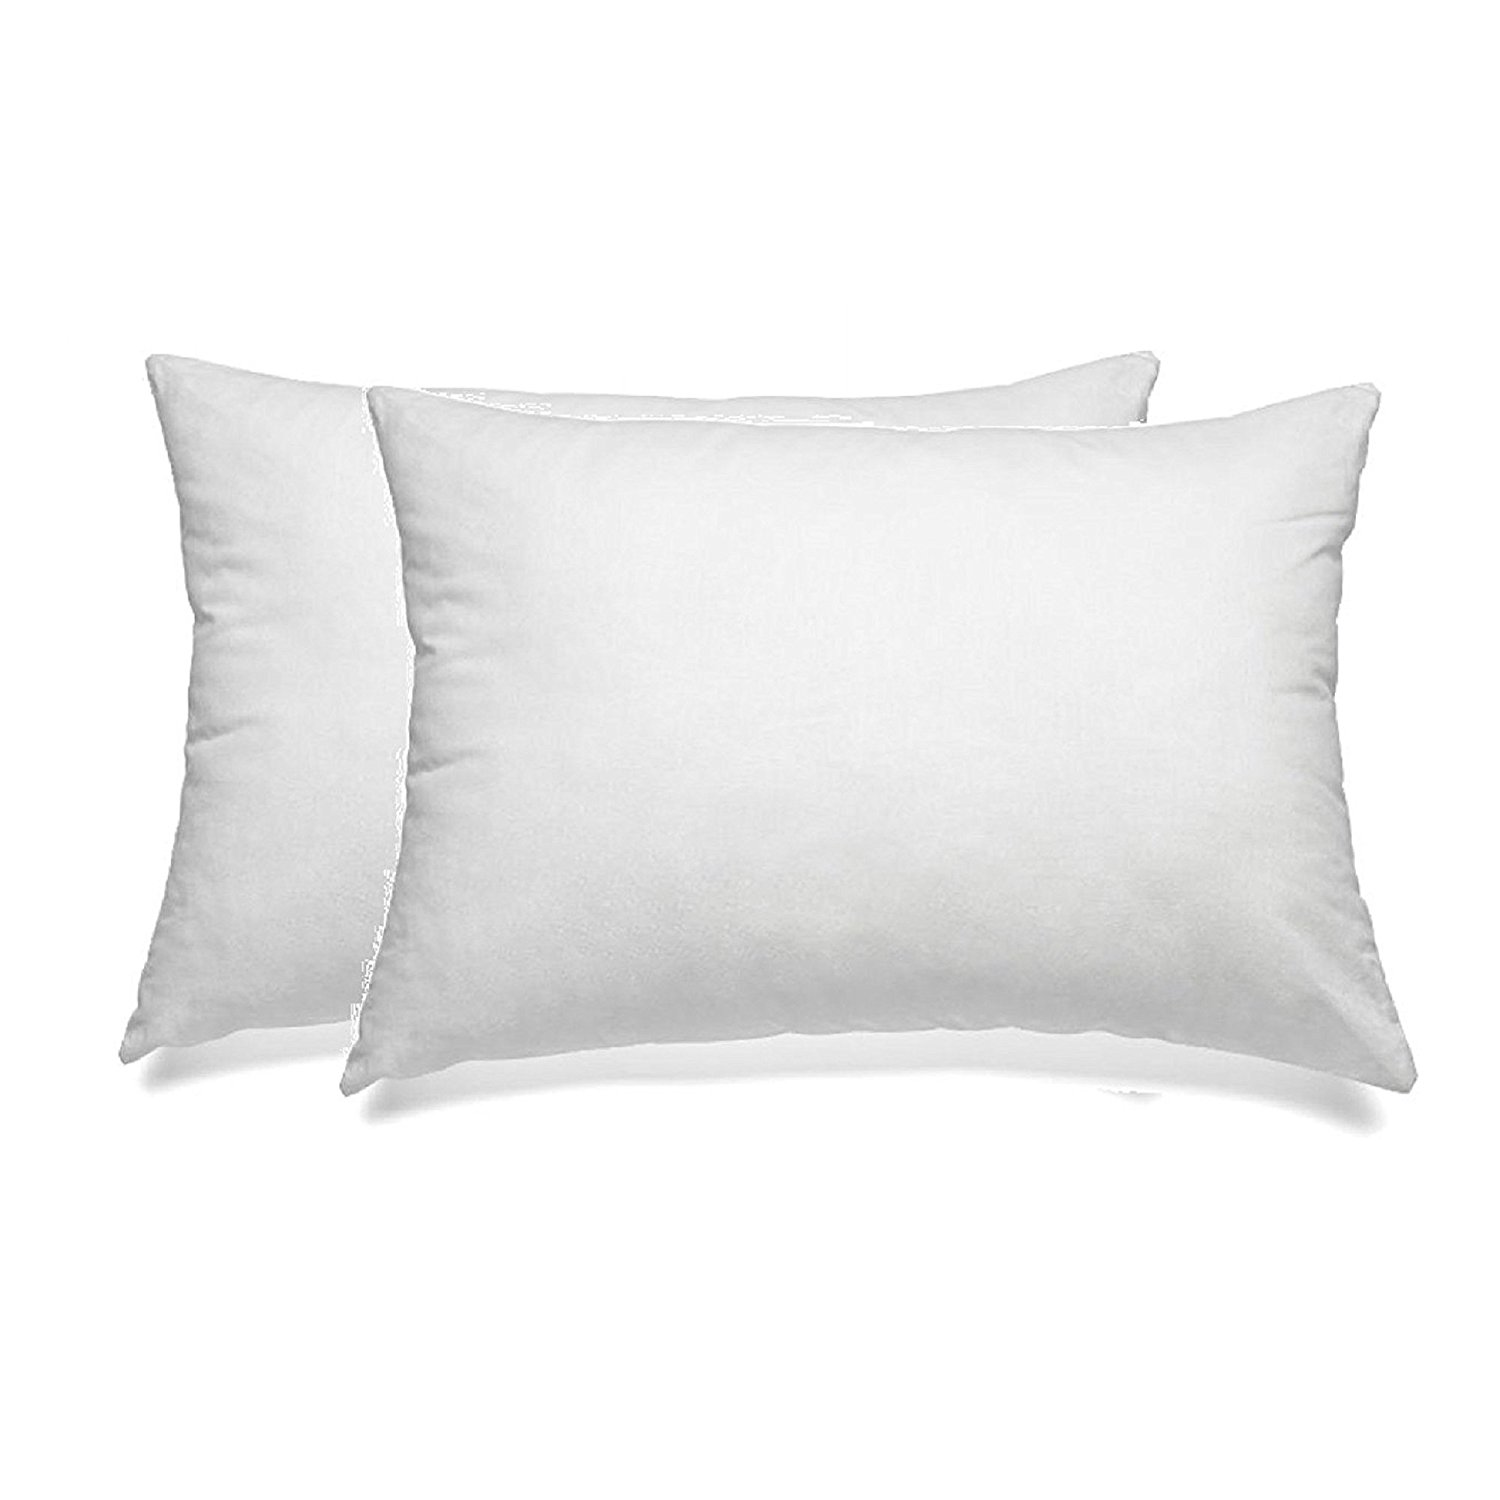 Pillows Online Best Prices On Pillows Online 2017 Top Value Reviews